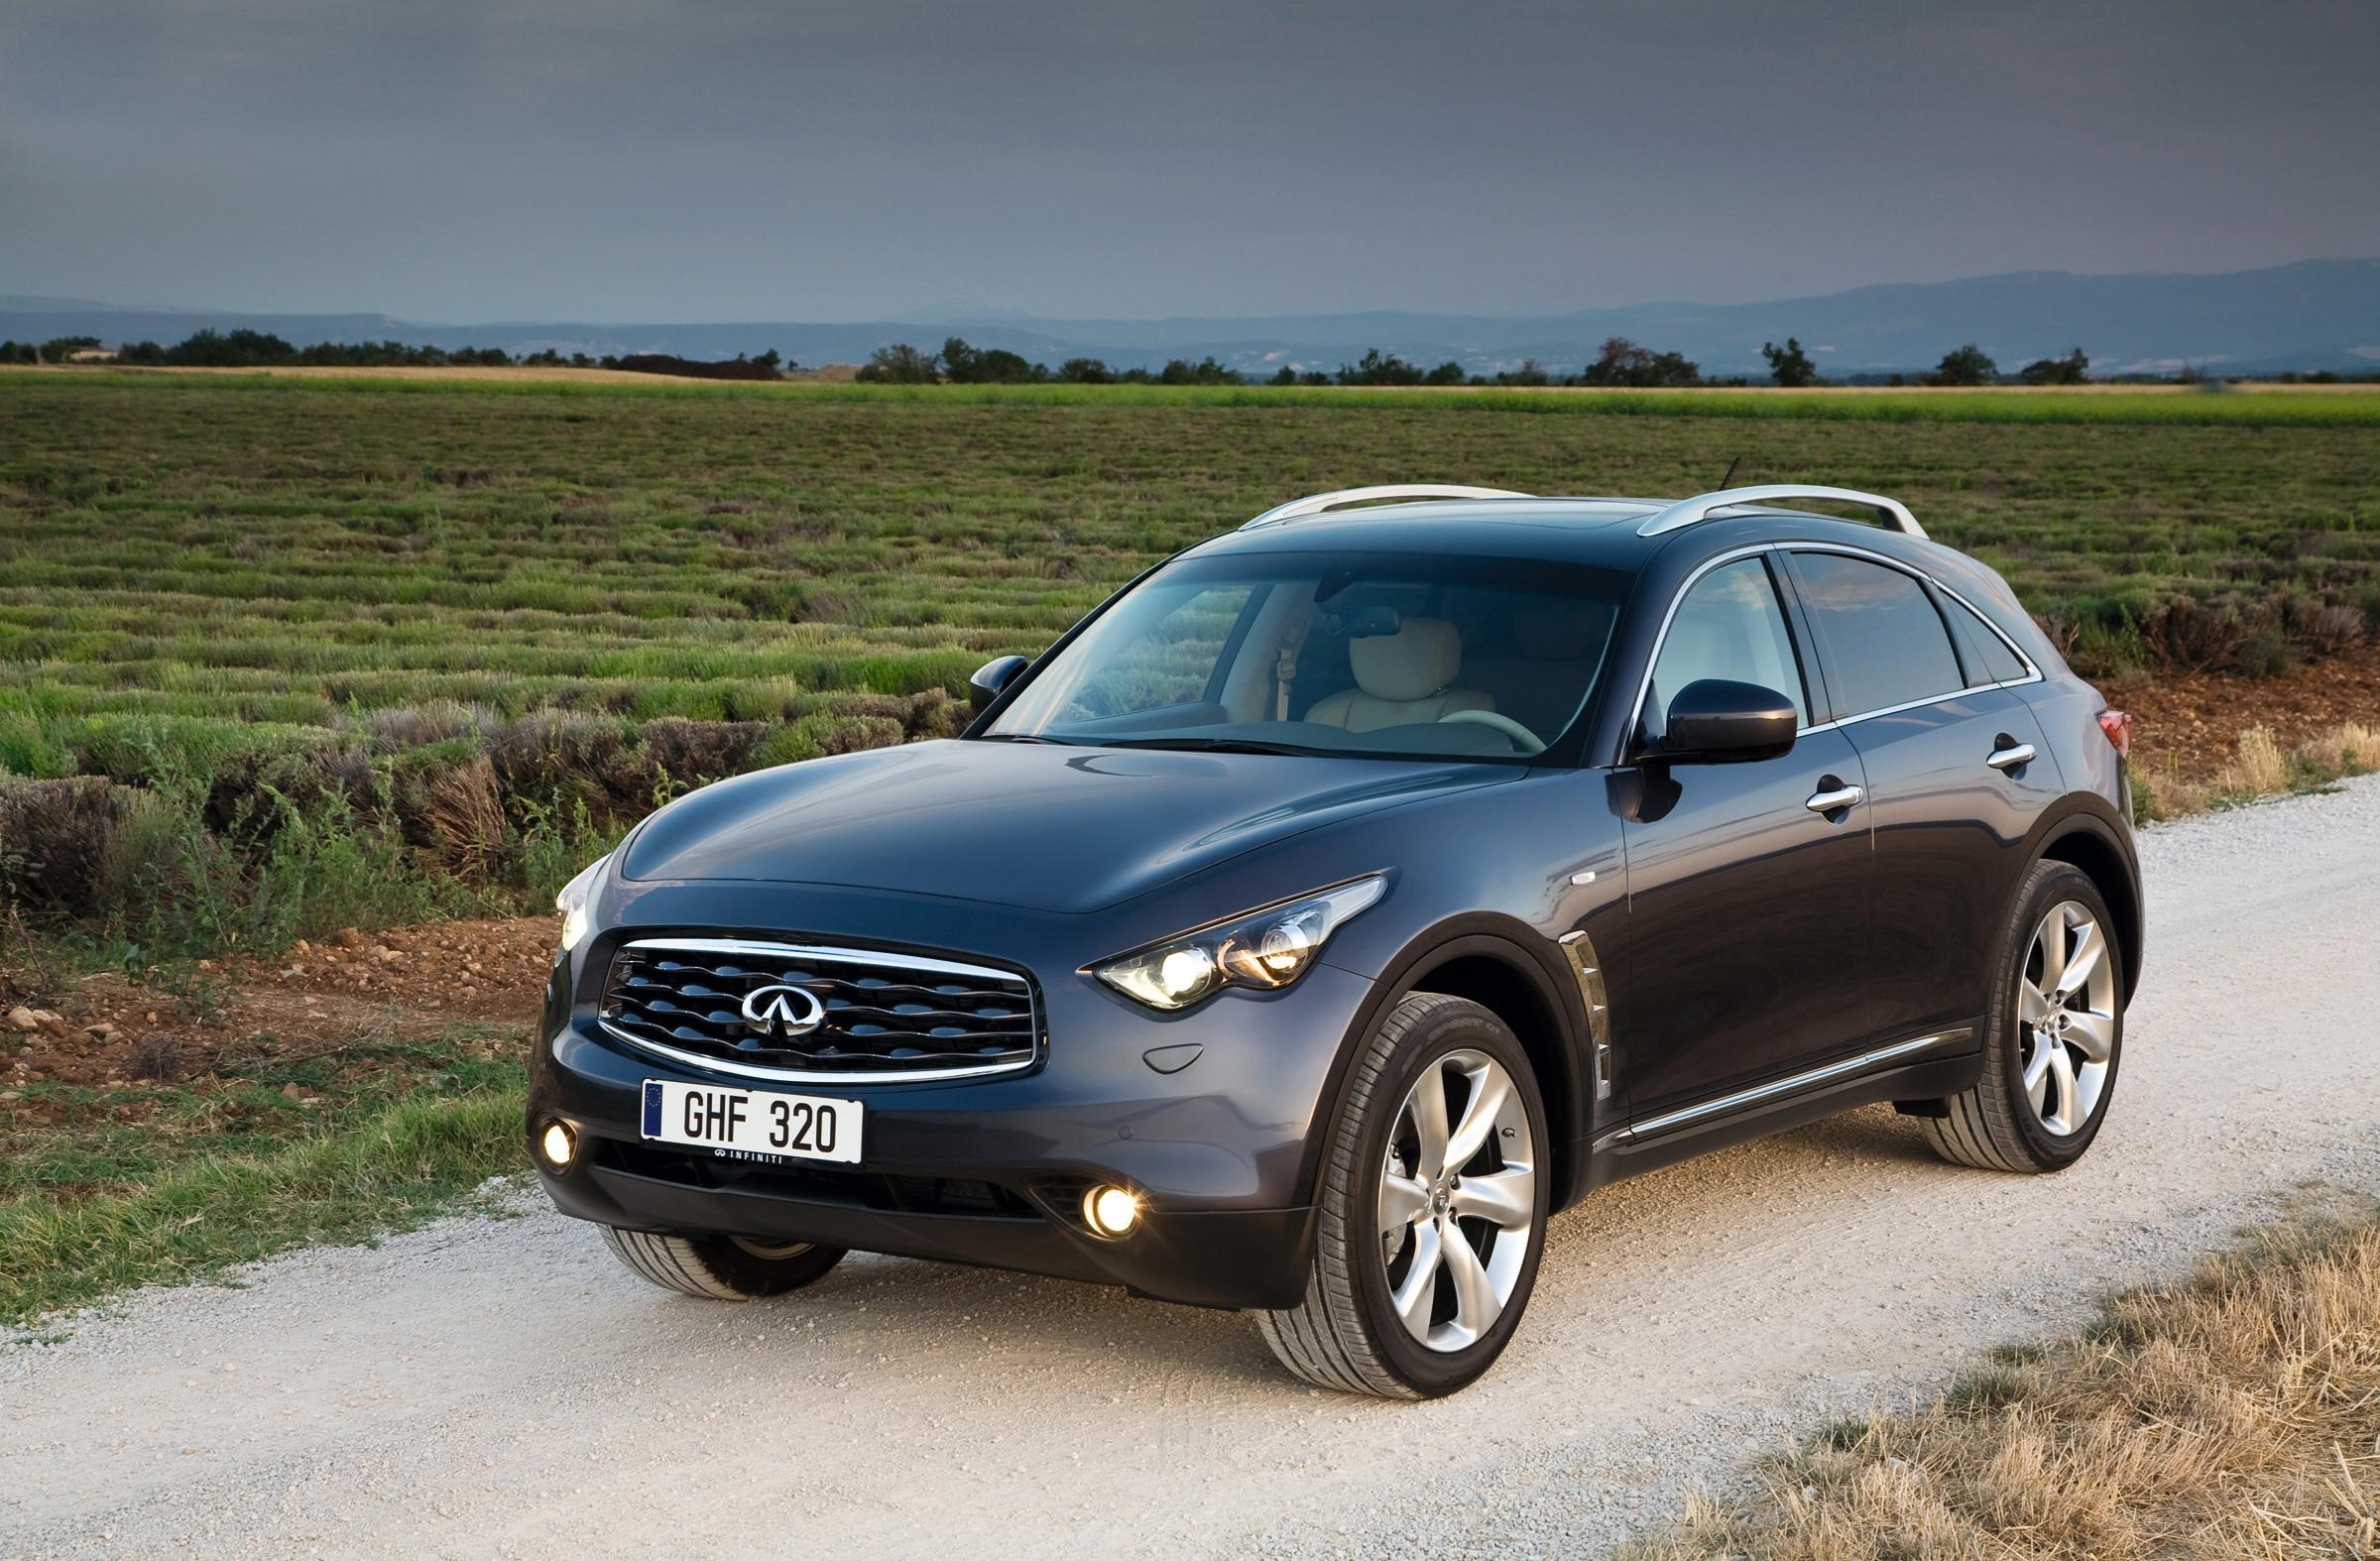 2009 Infiniti Fx50 Top Speed 2008 Fx35 Oem Remote Start With Smartphone Control Free